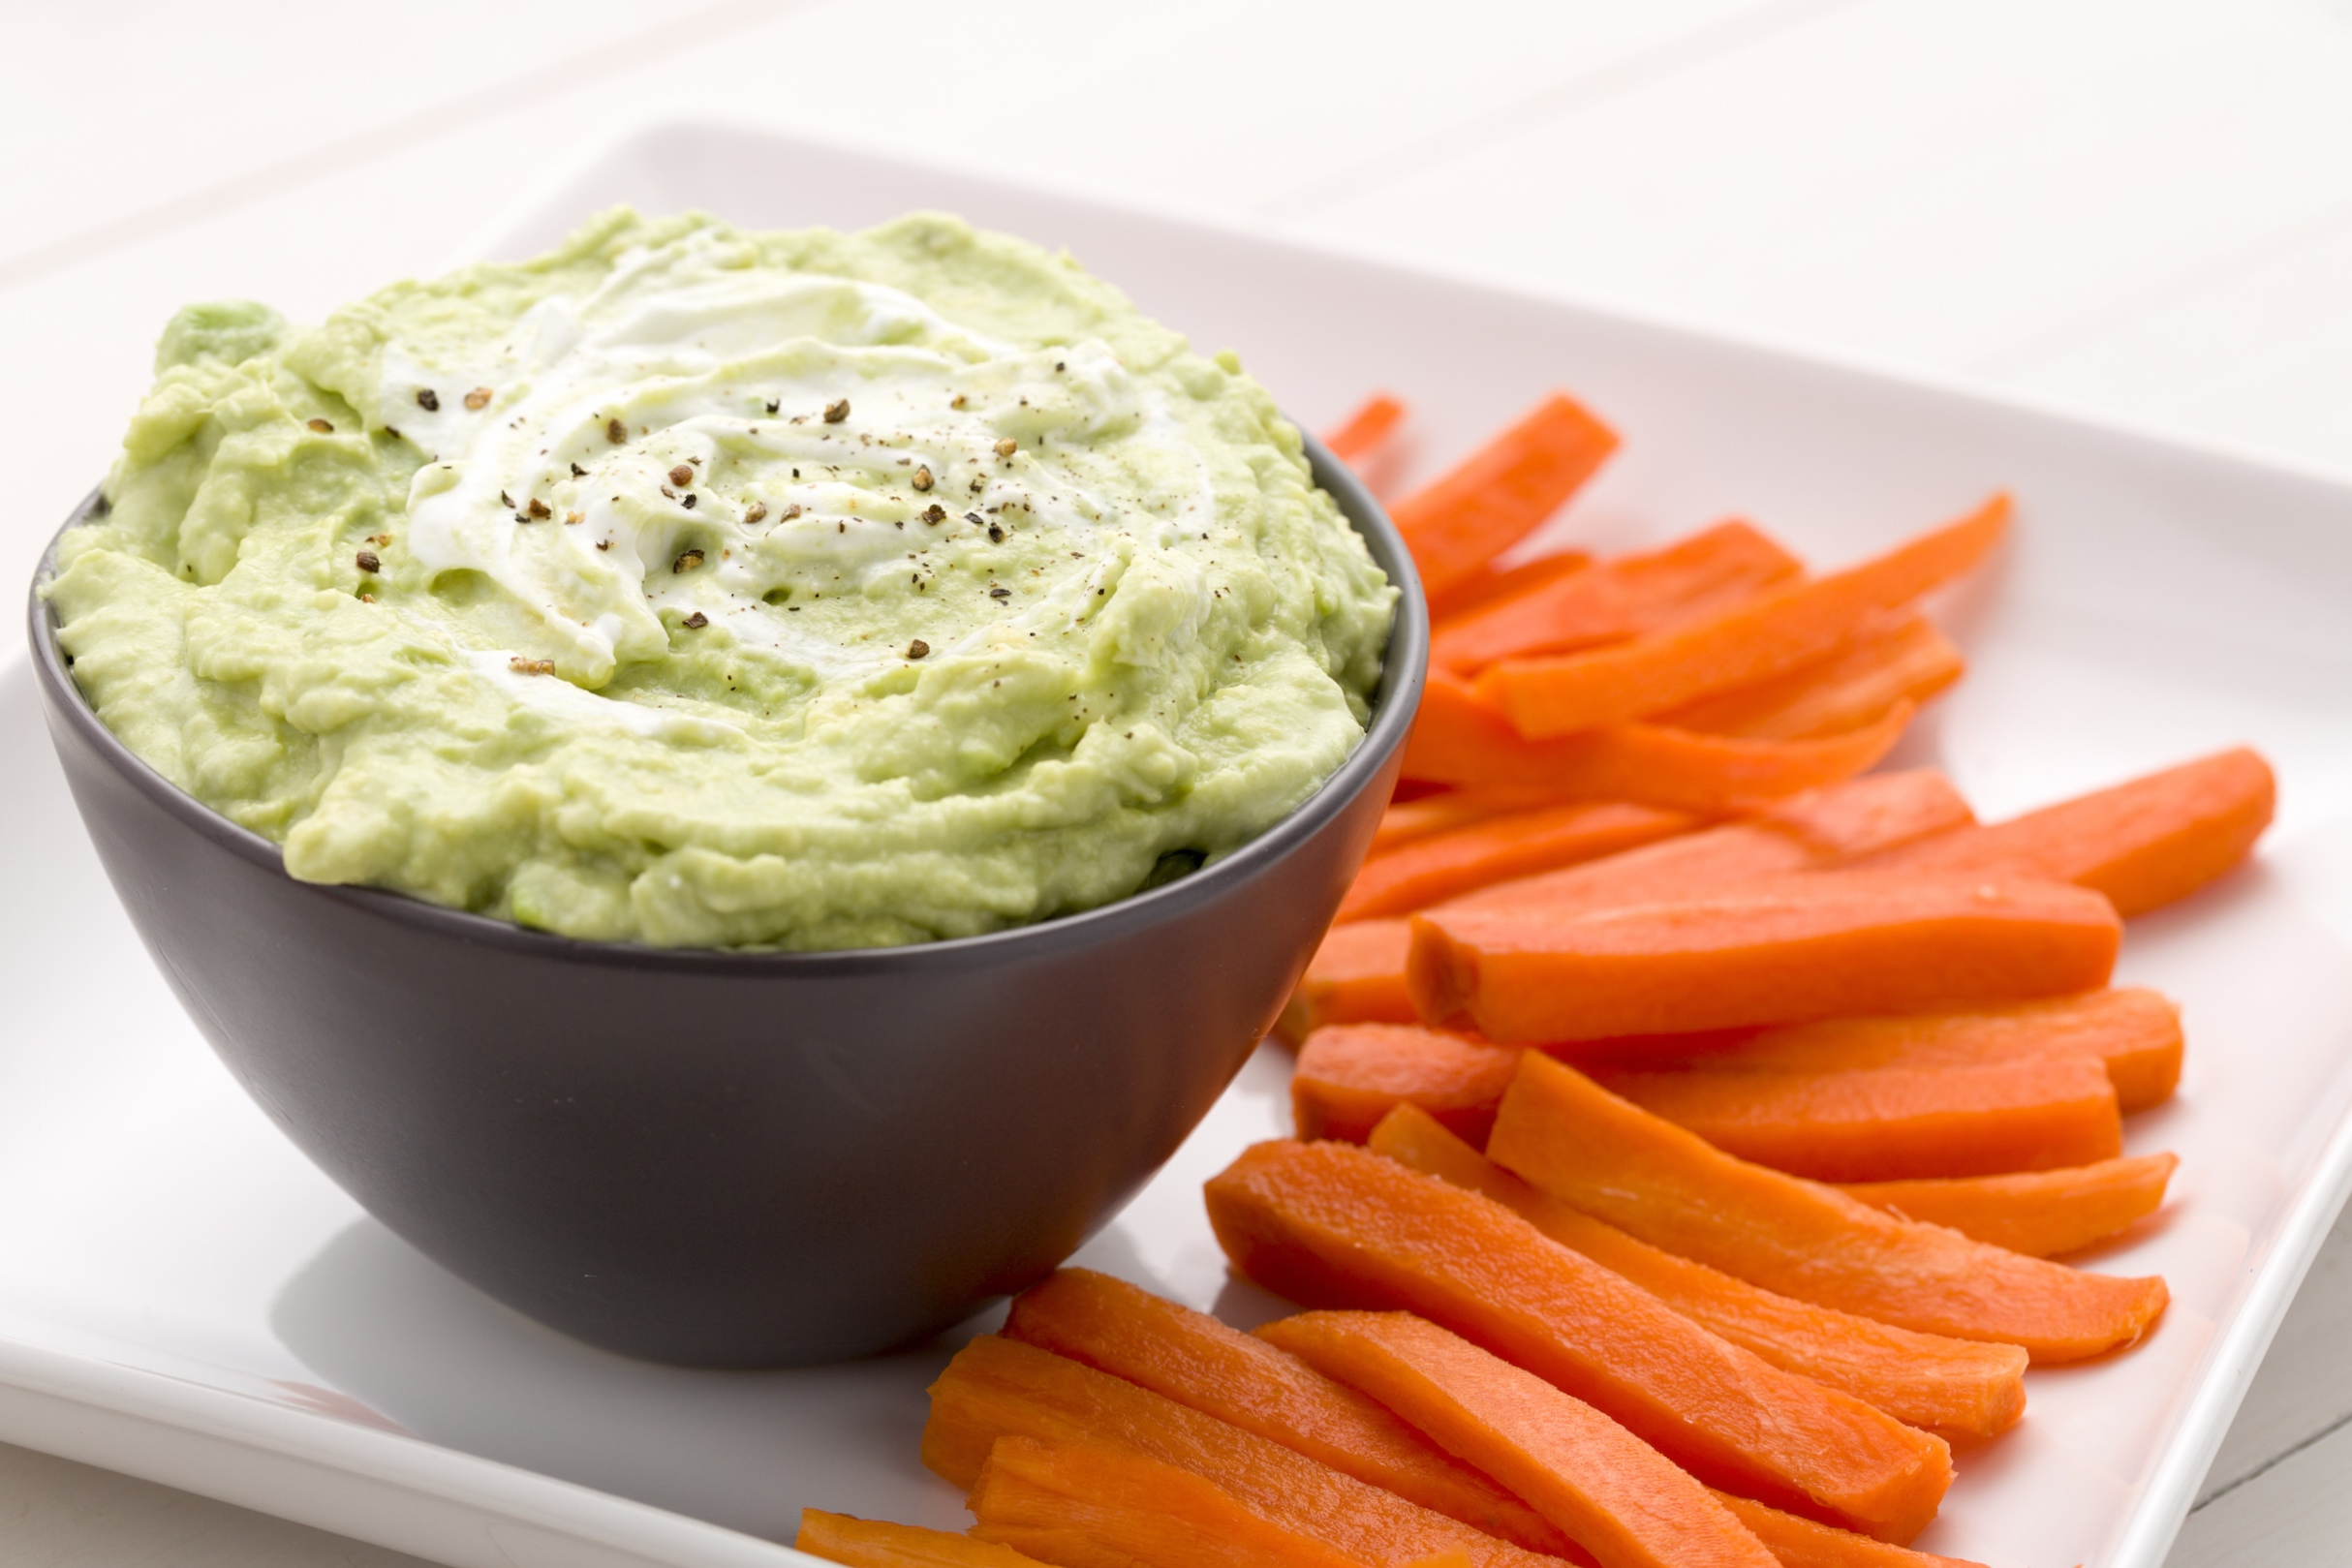 Best Creamy Avocado Dip Recipe - How to Make Creamy ...